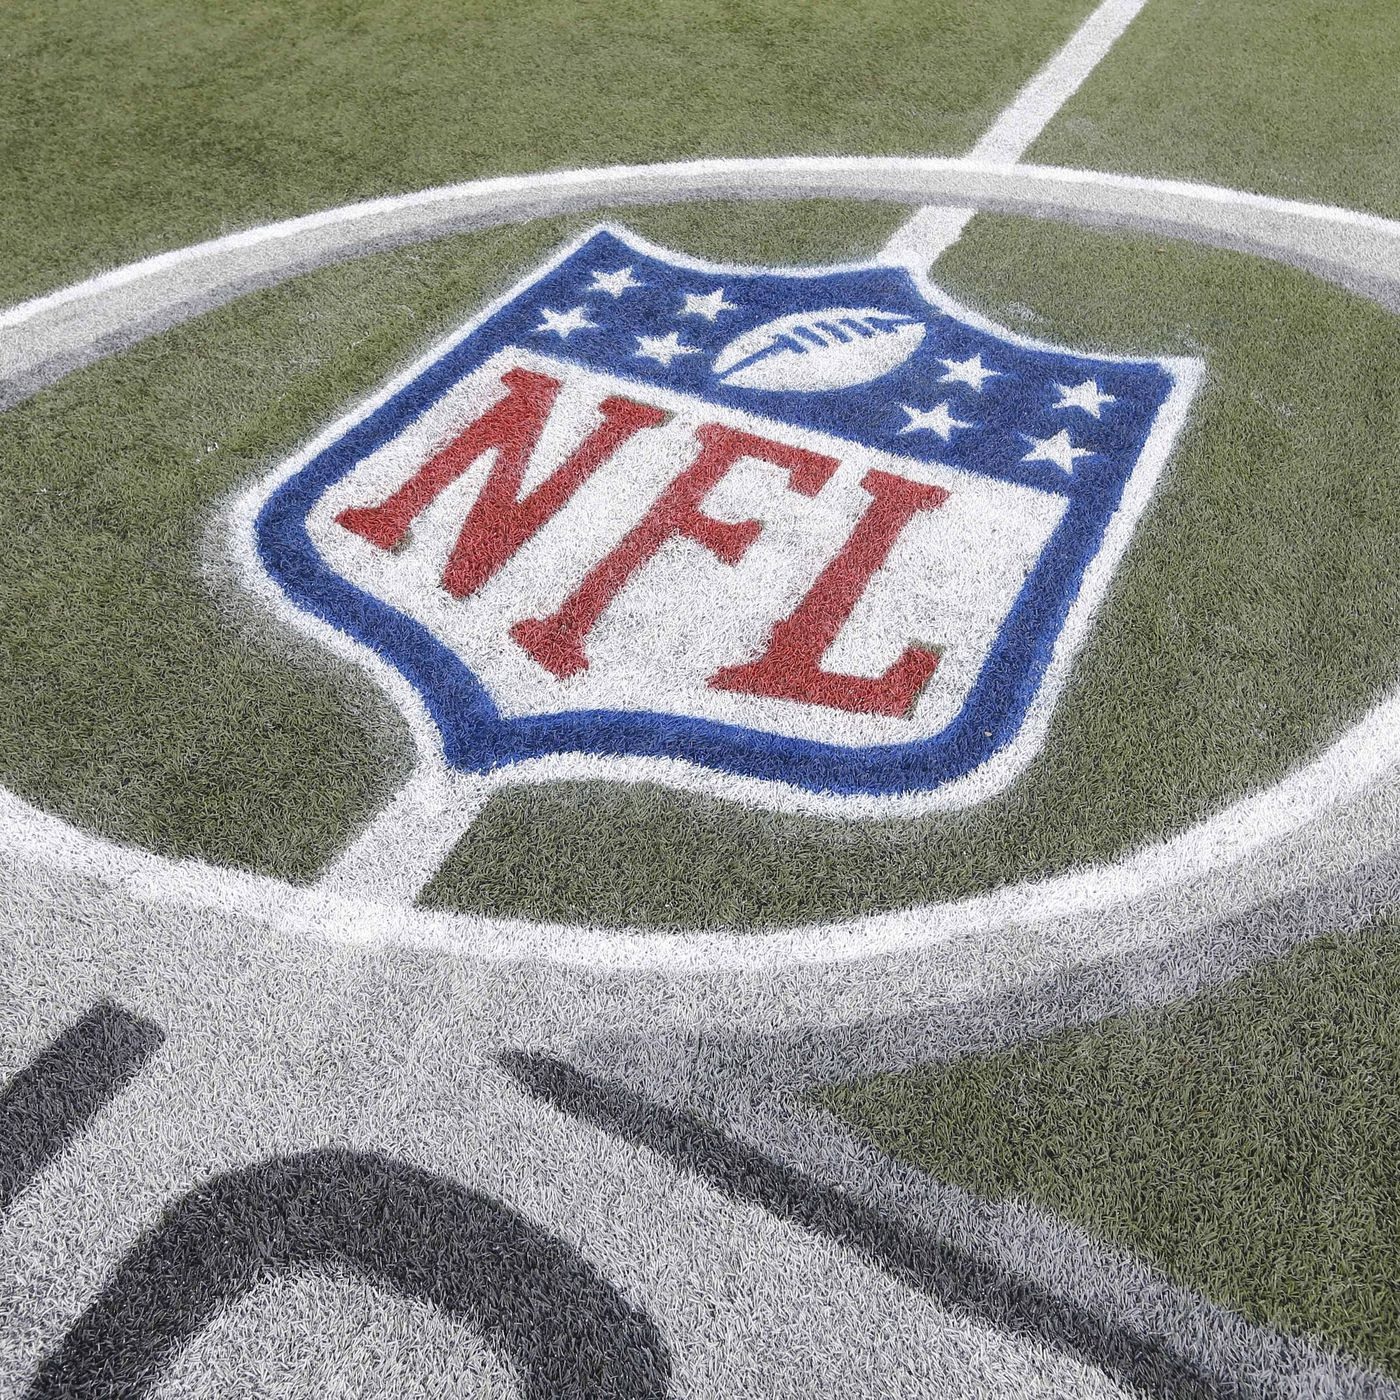 2014 NFL Schedule Which Teams Have The Easiest And Hardest Schedules